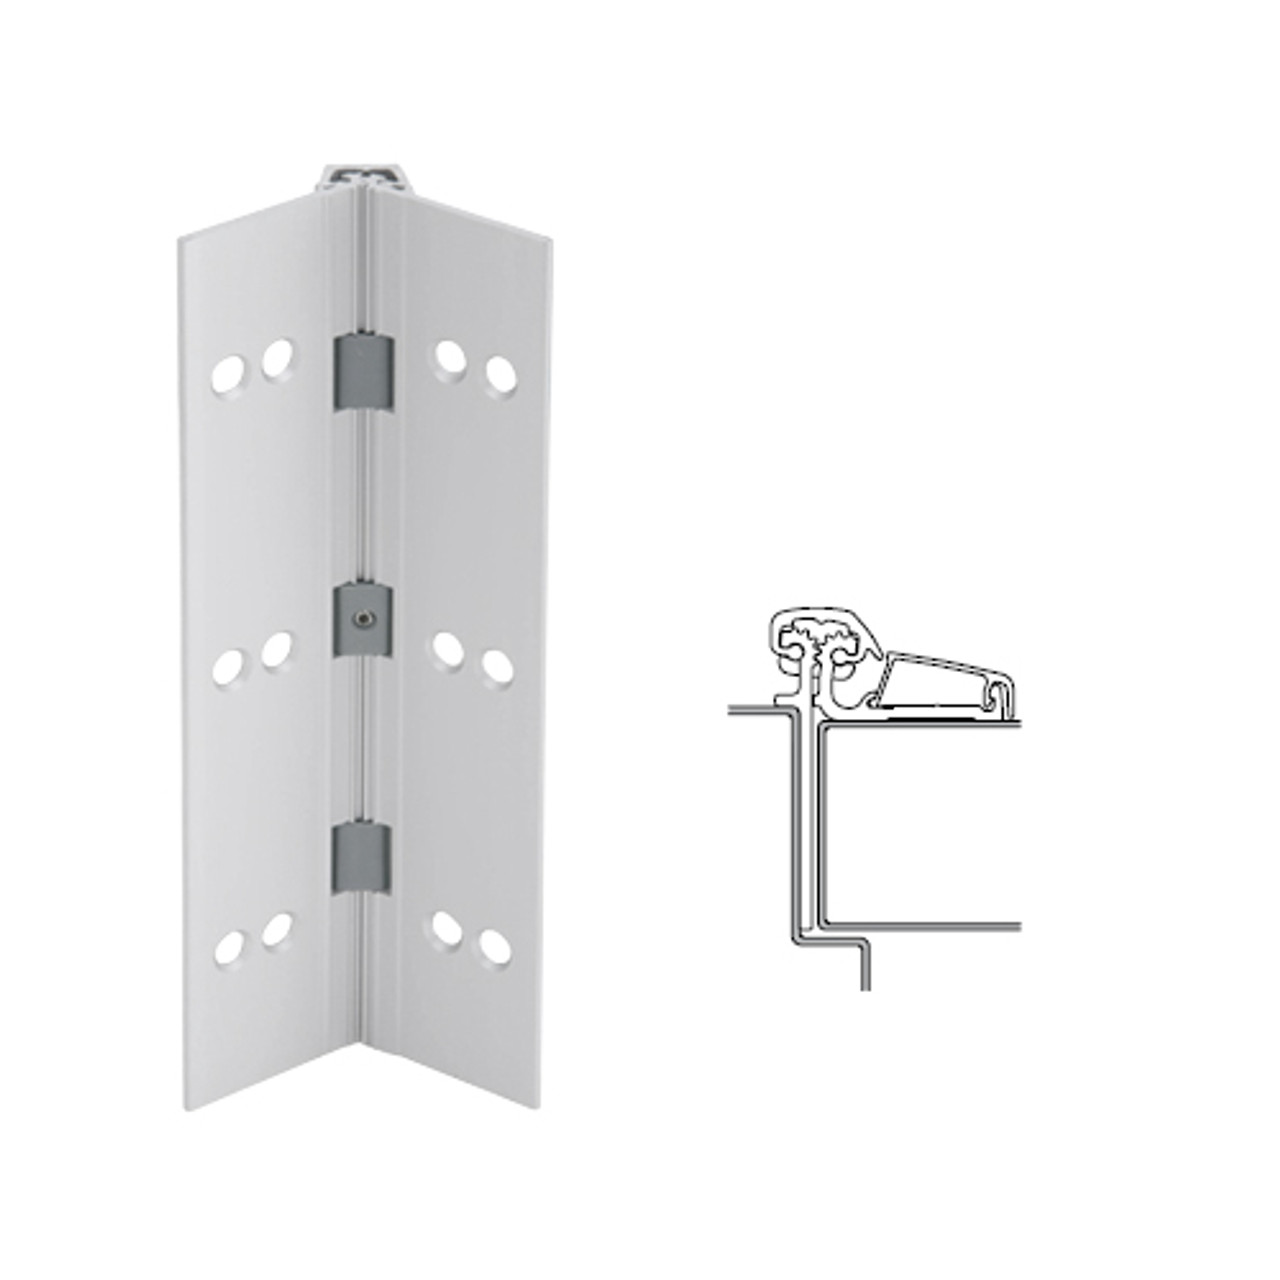 054XY-US28-83-WD IVES Adjustable Half Surface Continuous Geared Hinges with Wood Screws in Satin Aluminum